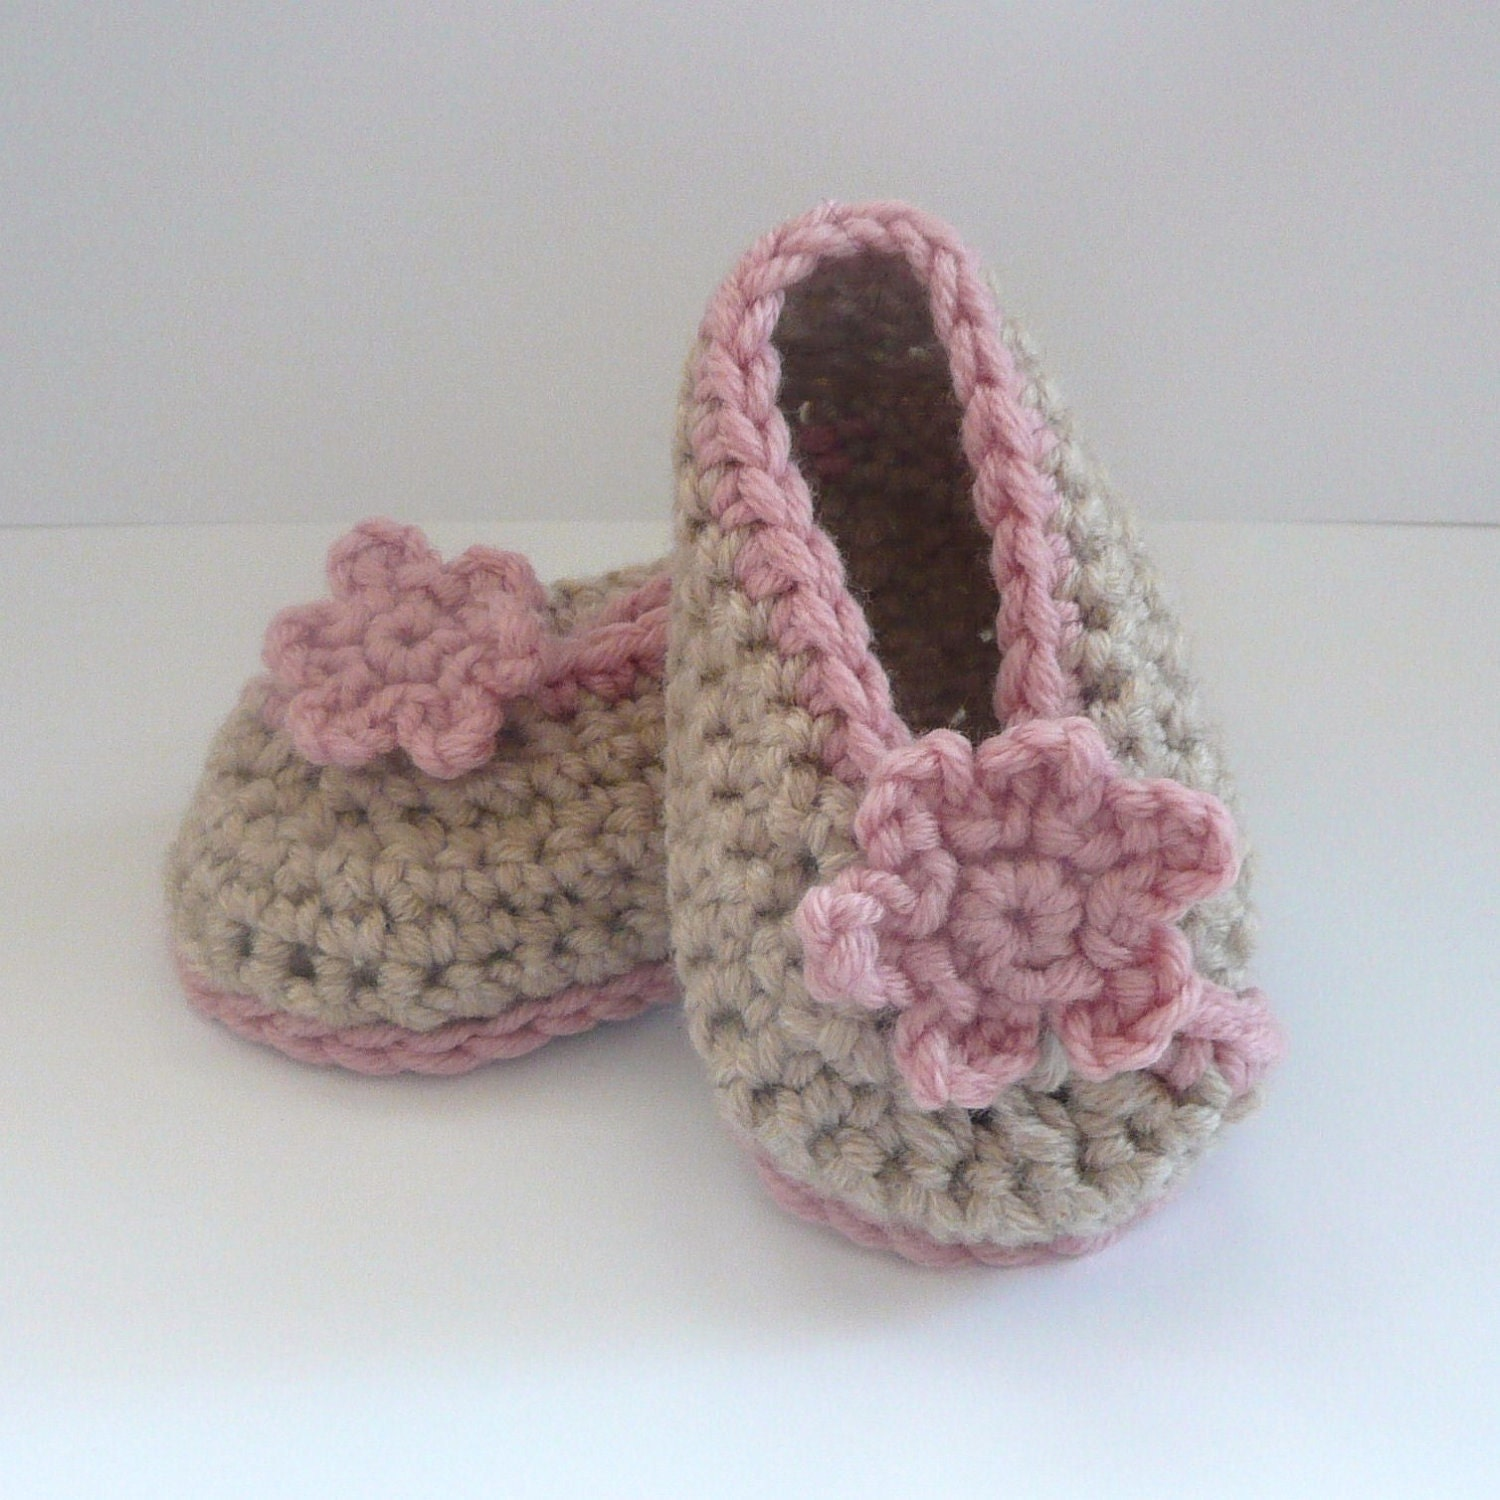 Crochet PATTERN Baby Booties Crossover BABY SHOES Slippers